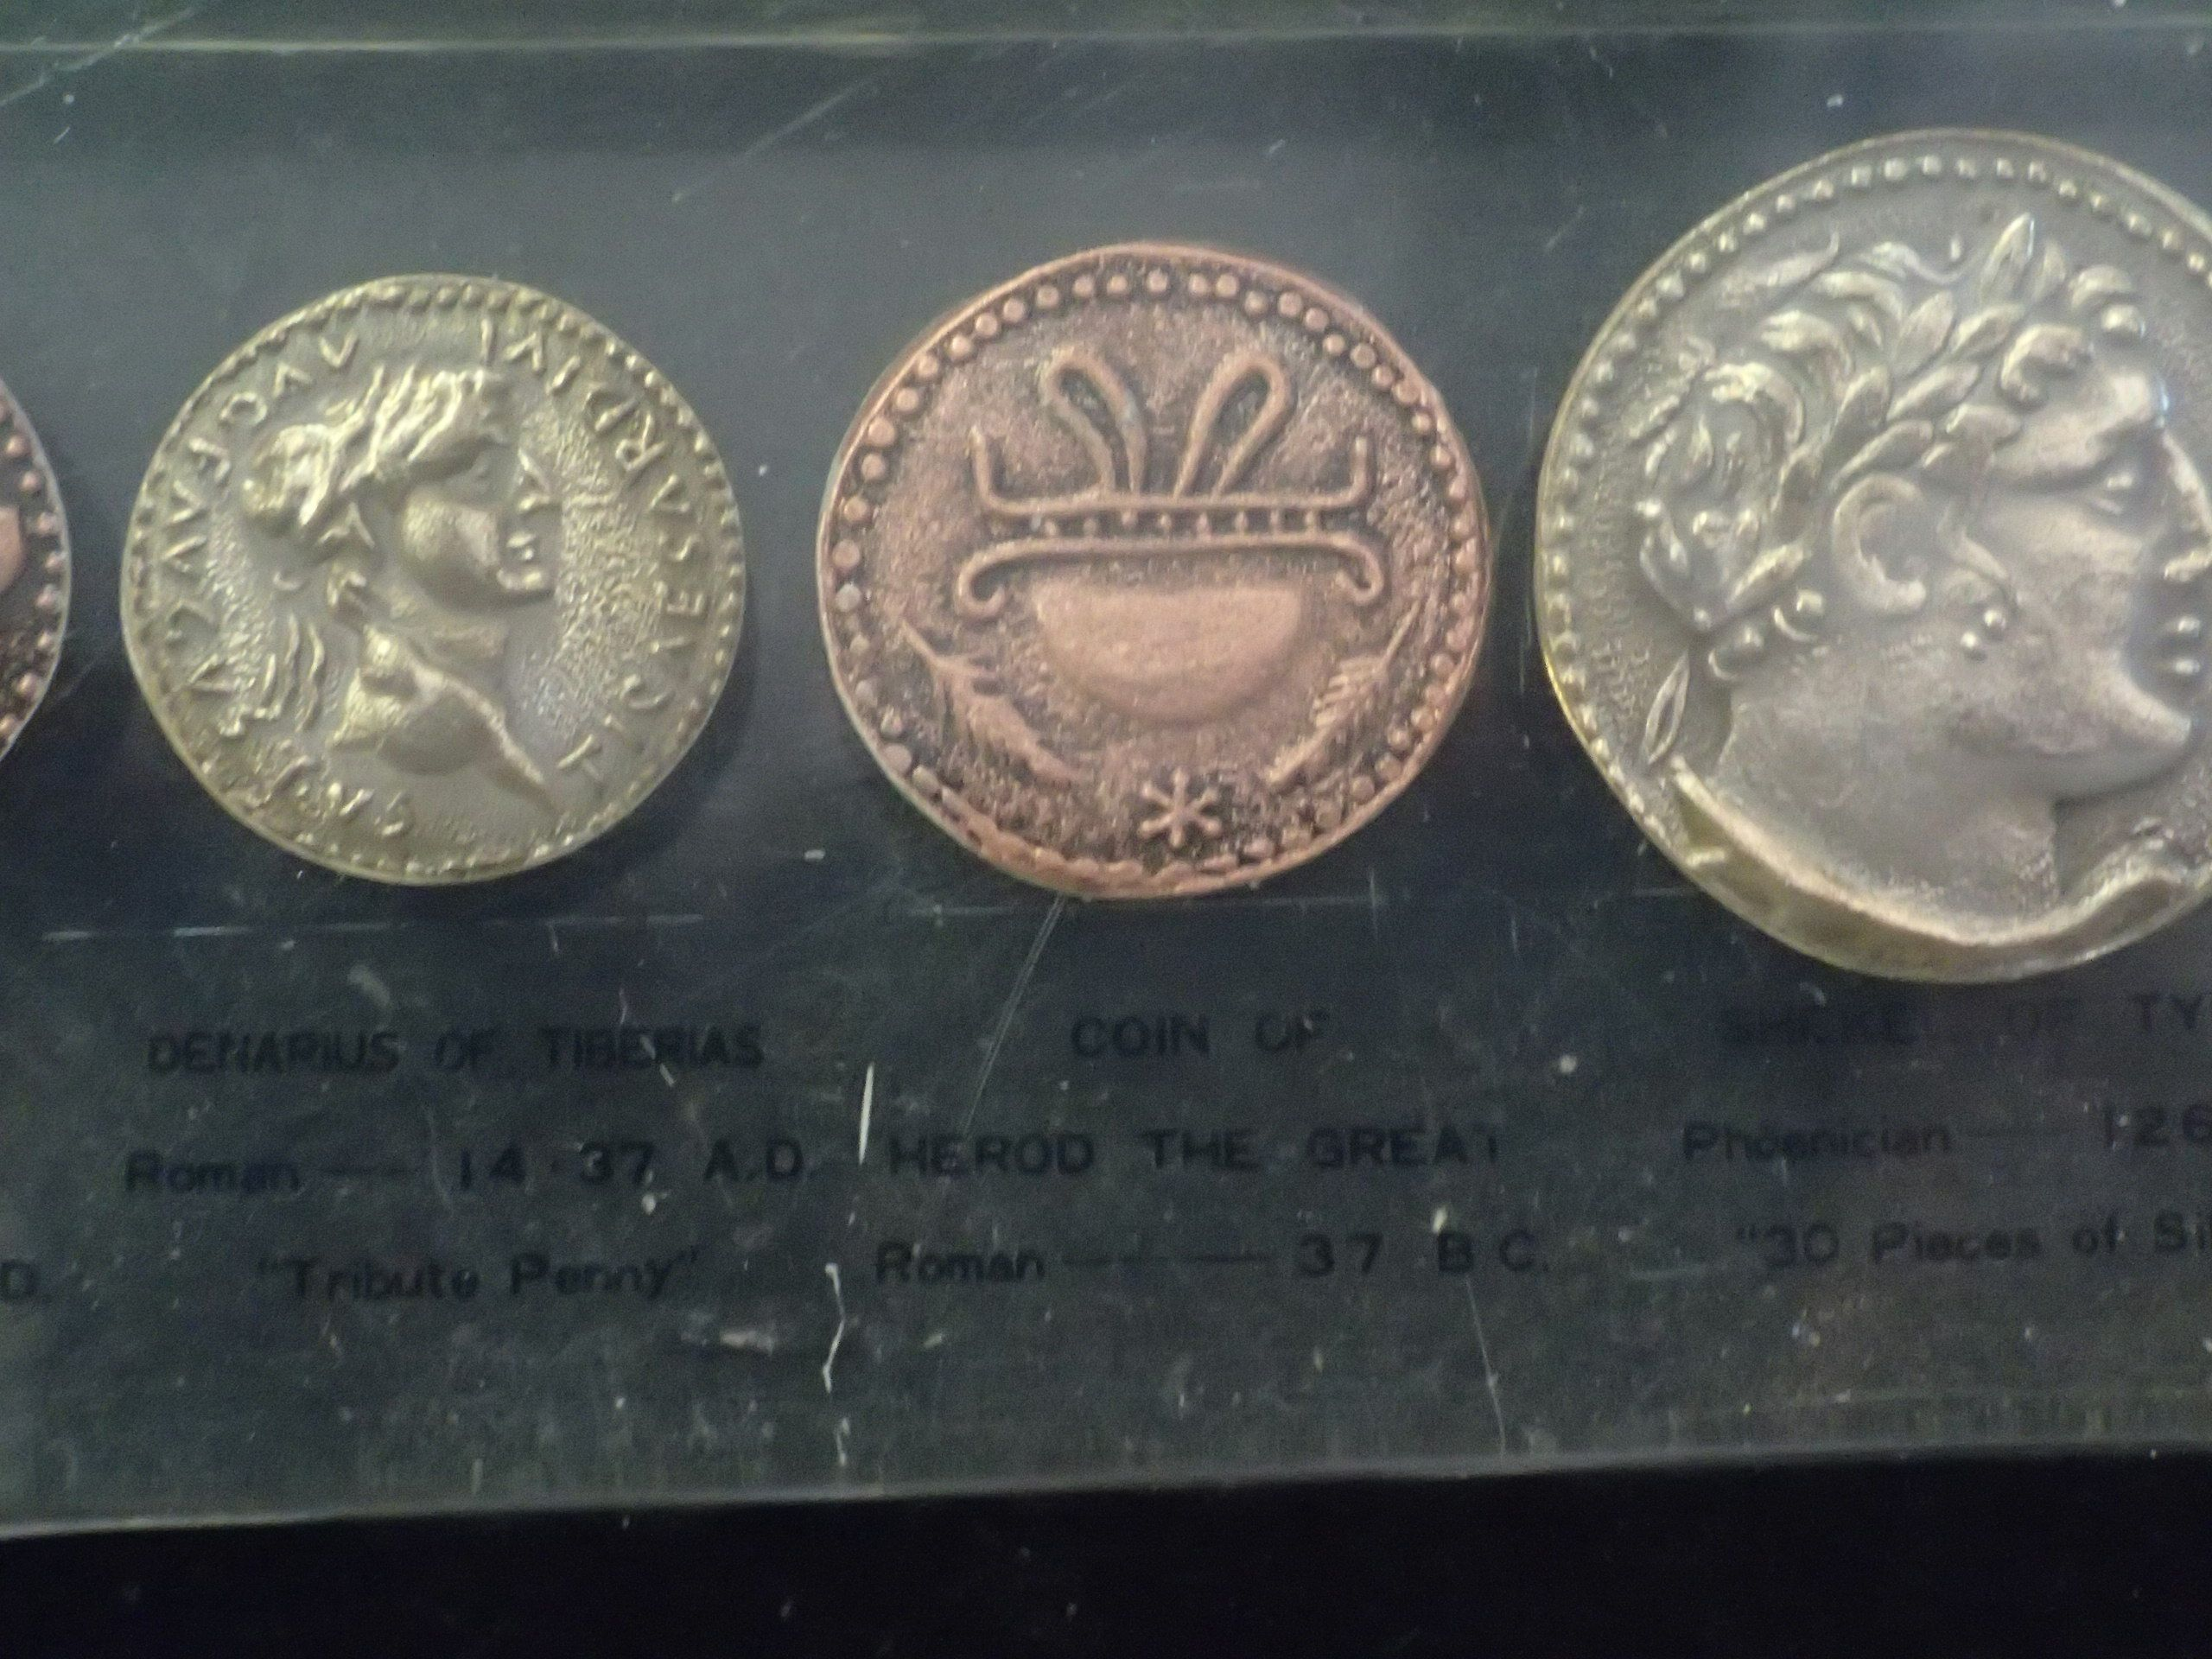 """Denarius of Tiberias - Roman 14-37 AD aka """"Tribute Penny"""" (left). Coin of Herod the Great - Roman 37 BC (center). Shekel of Tyre - Phoenician 126 BC aka """"30 Pieces of Silver"""""""